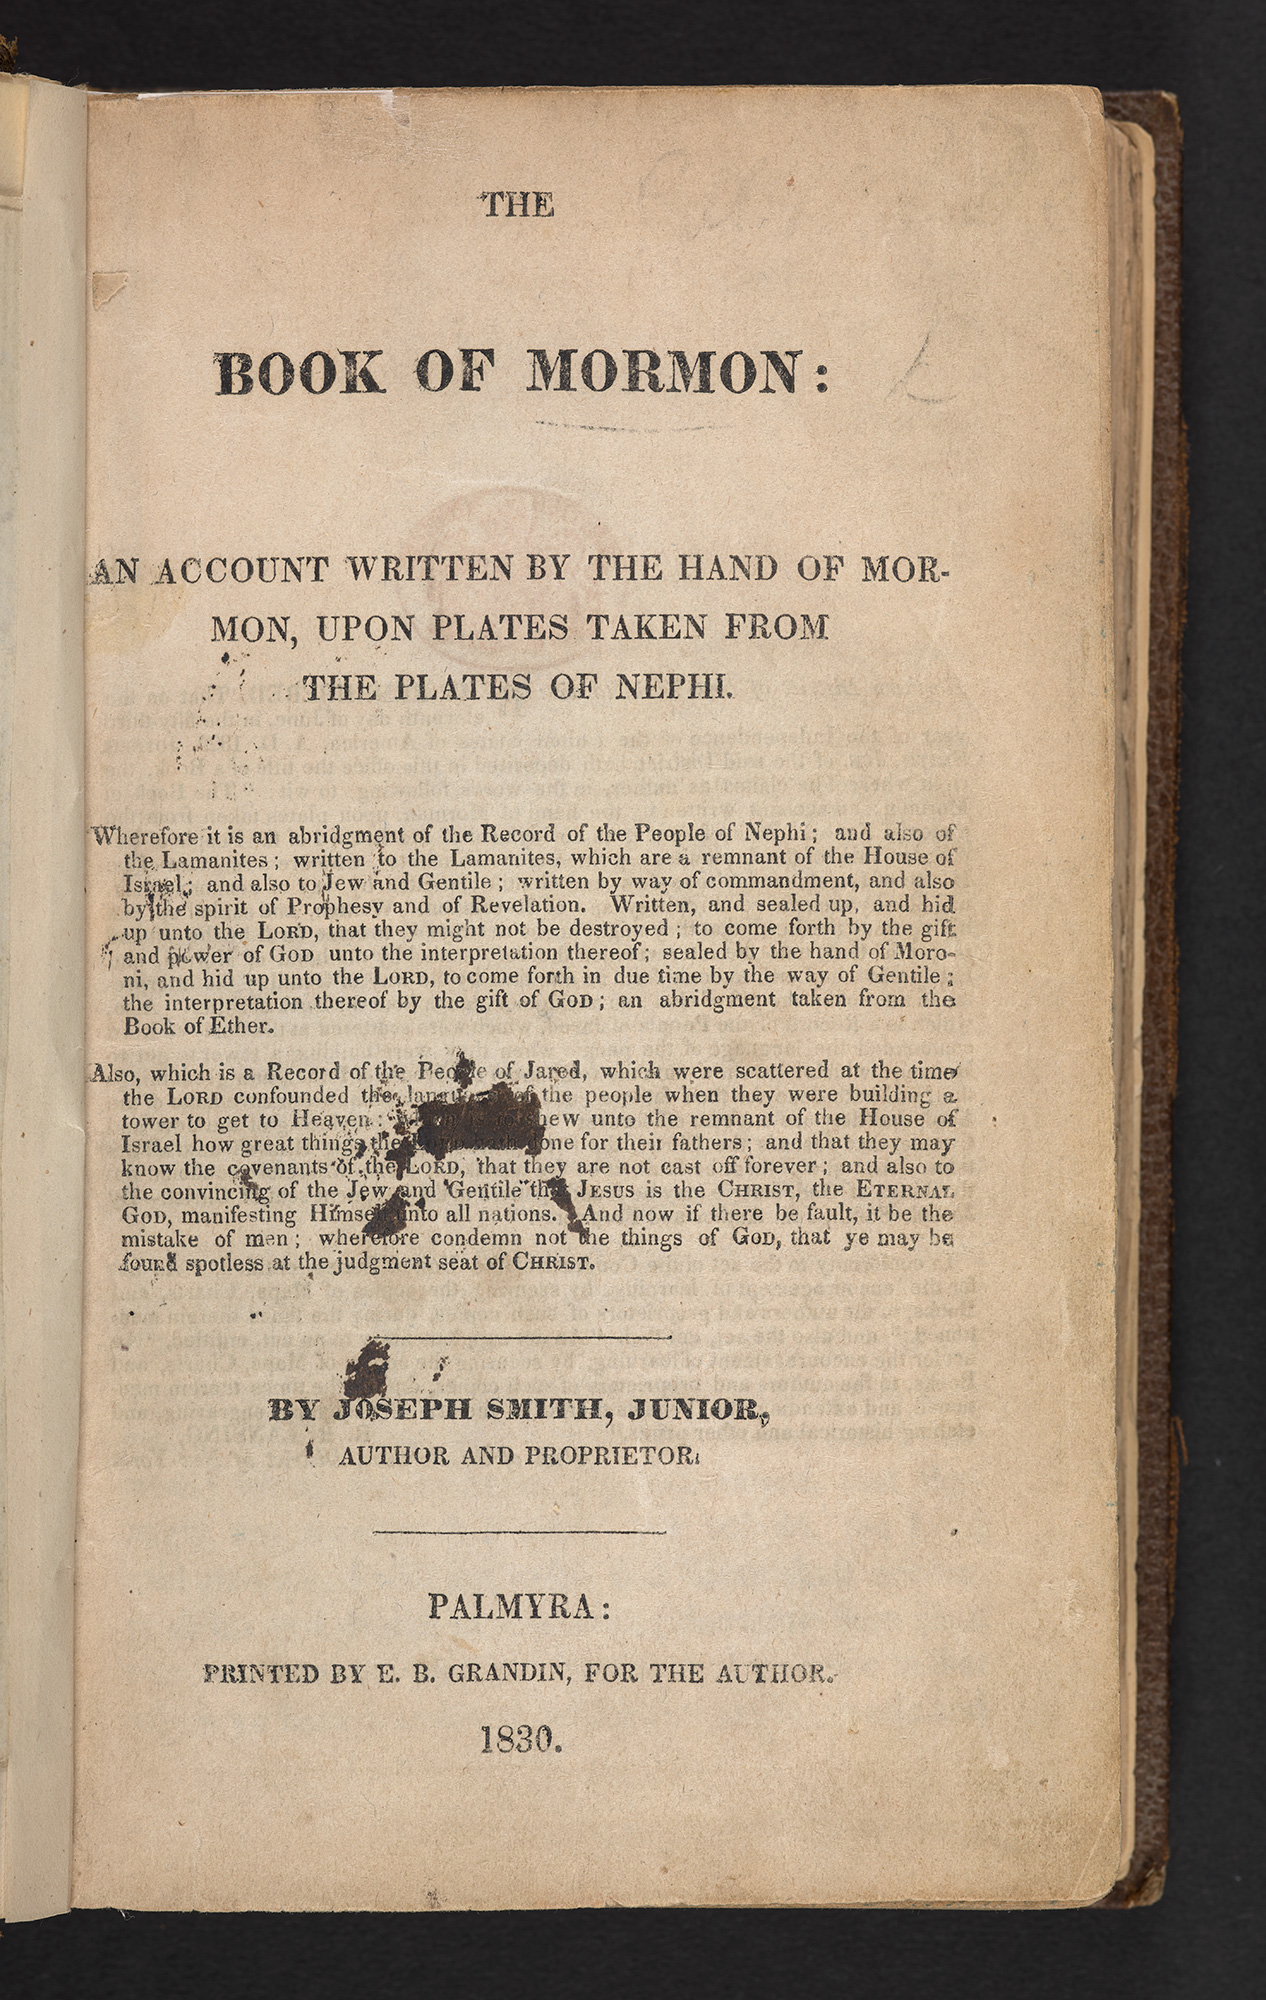 title page from a 1830 edition of the Book of Mormon